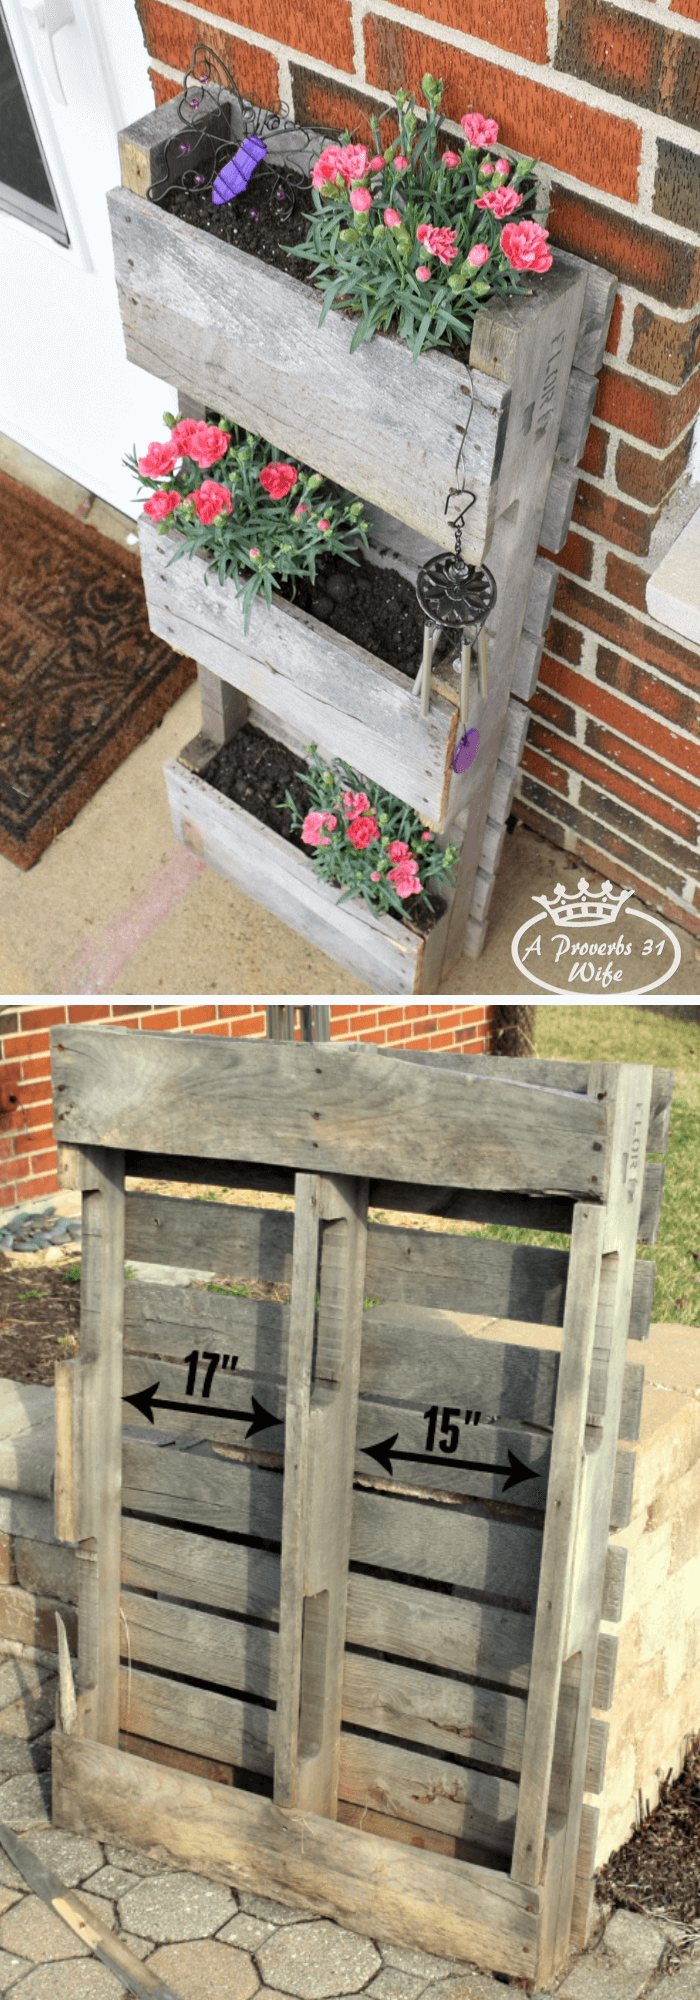 Pallet Planter for Butterflies